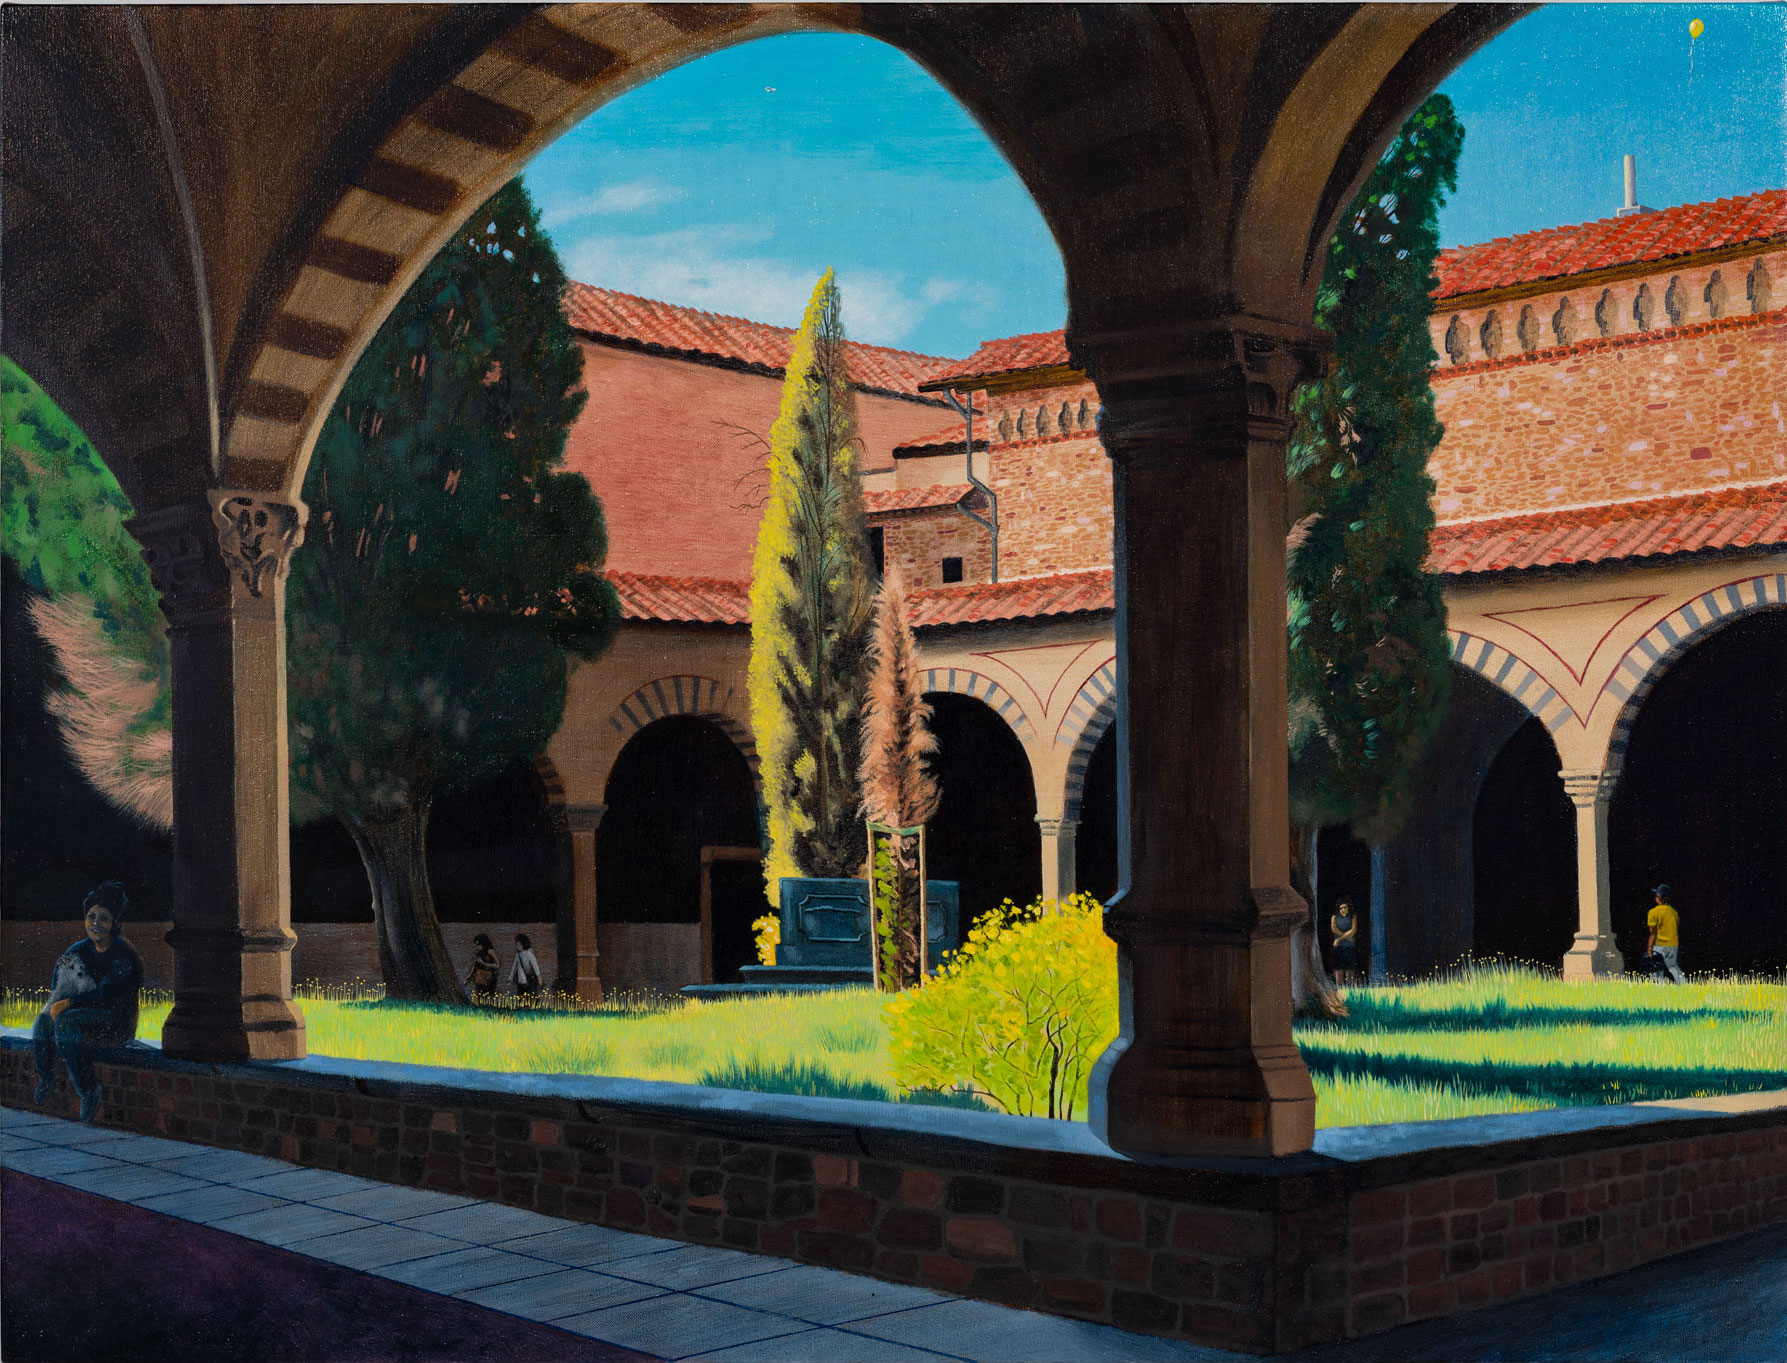 """Cole Case's """"Chiostro Verde, Santa Maria Novella, Looking 315 Degrees NW,"""" 2018. Oil on linen, 38 by 50 inches. (Ruben Diaz / Cole Case and E.C. LINA)"""